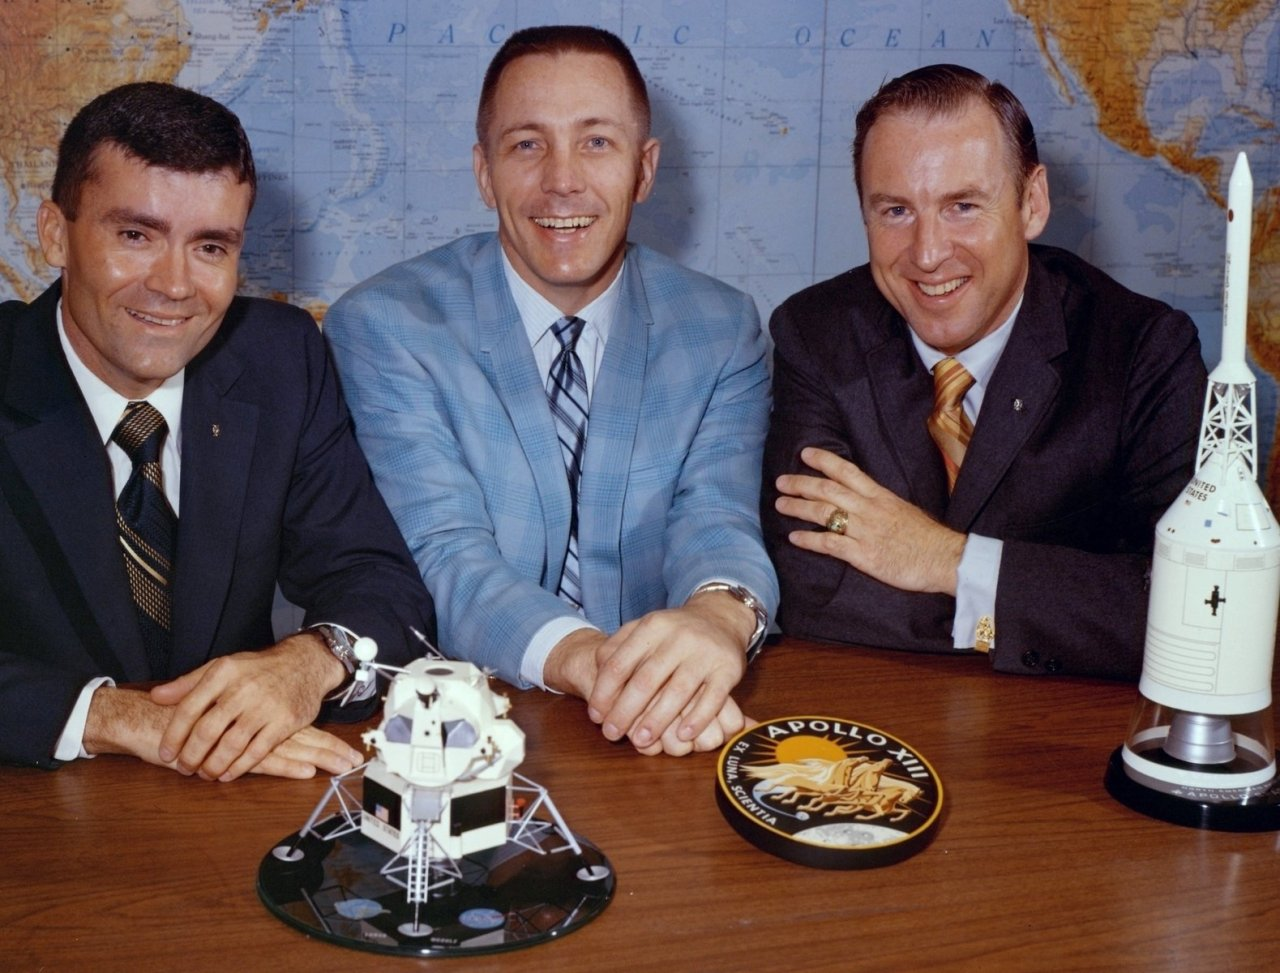 Fred Haise (l.), Jack Swigert und Jim Lovell (r.) am Tag vor dem Start. - © NASA/Kipp Teague